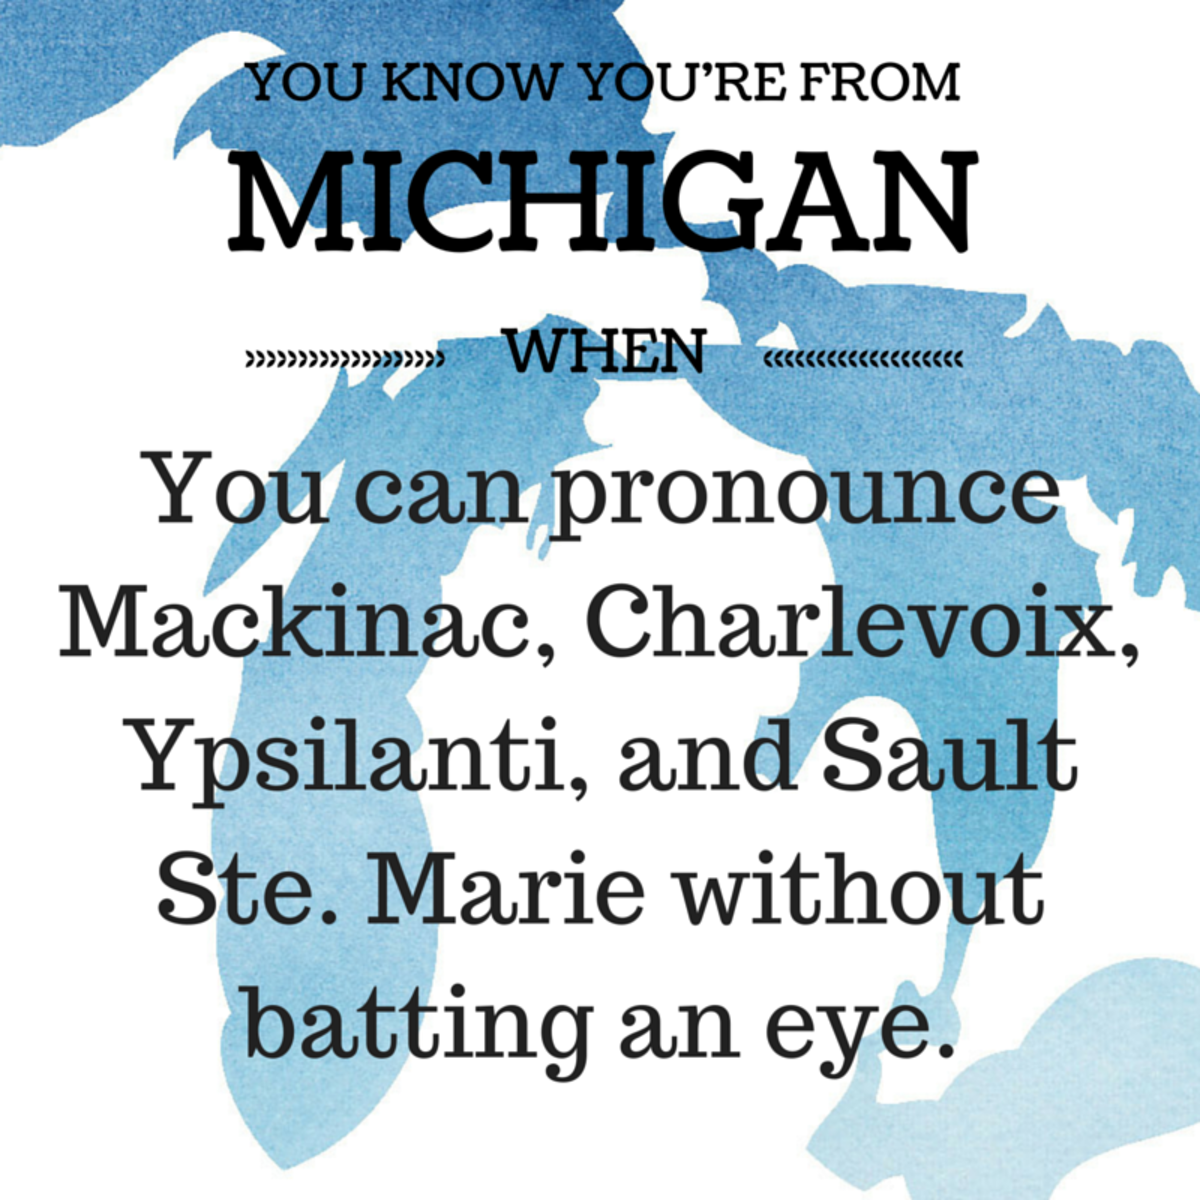 michigan-accent